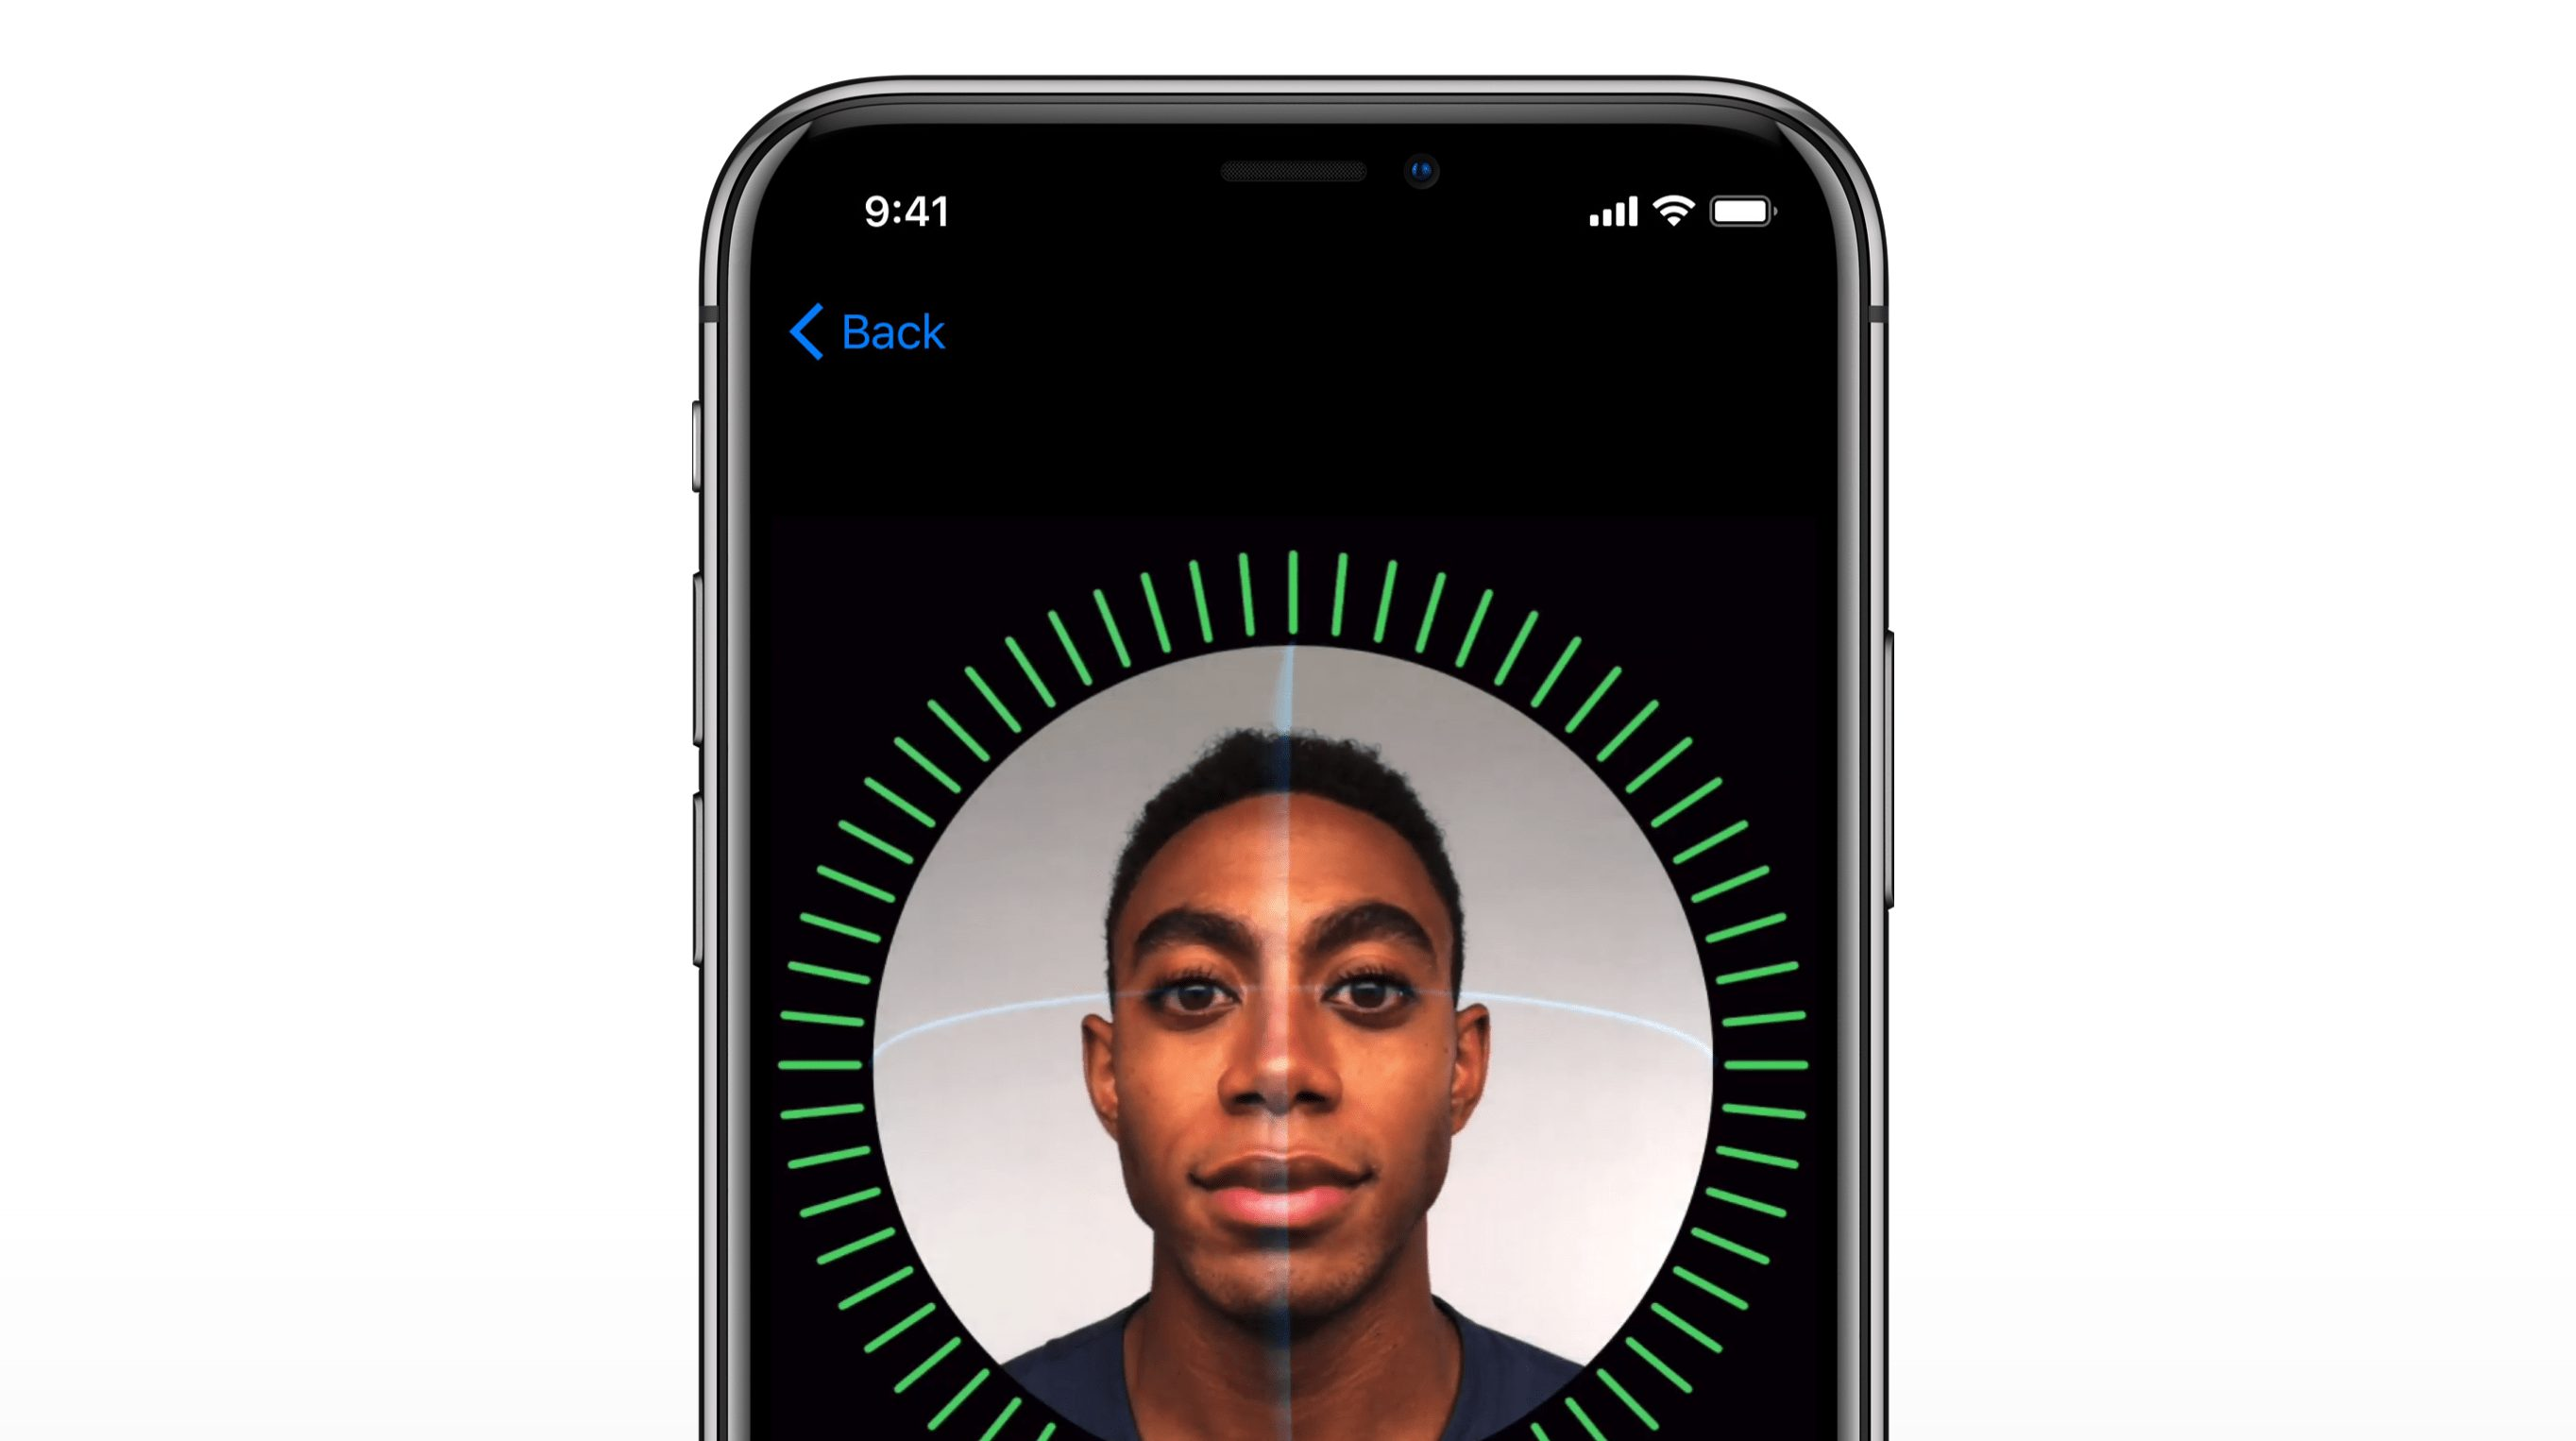 How To Reset Face ID On iPhone X